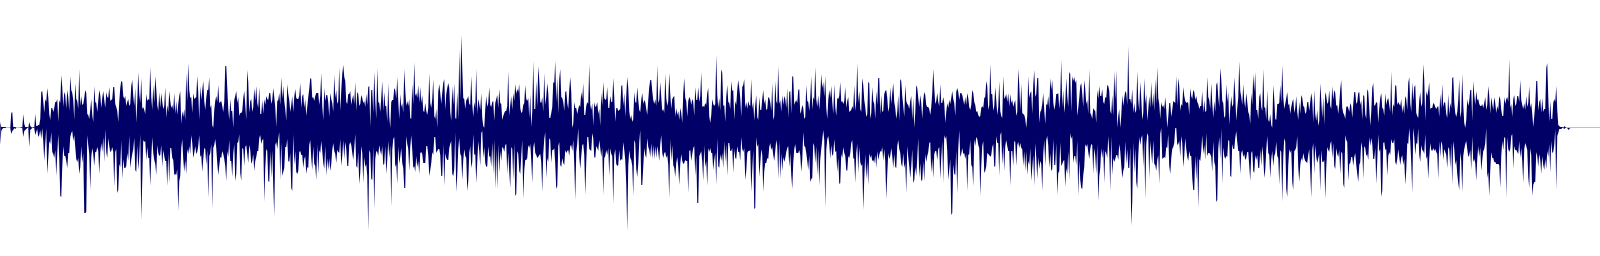 waveform of track #94421